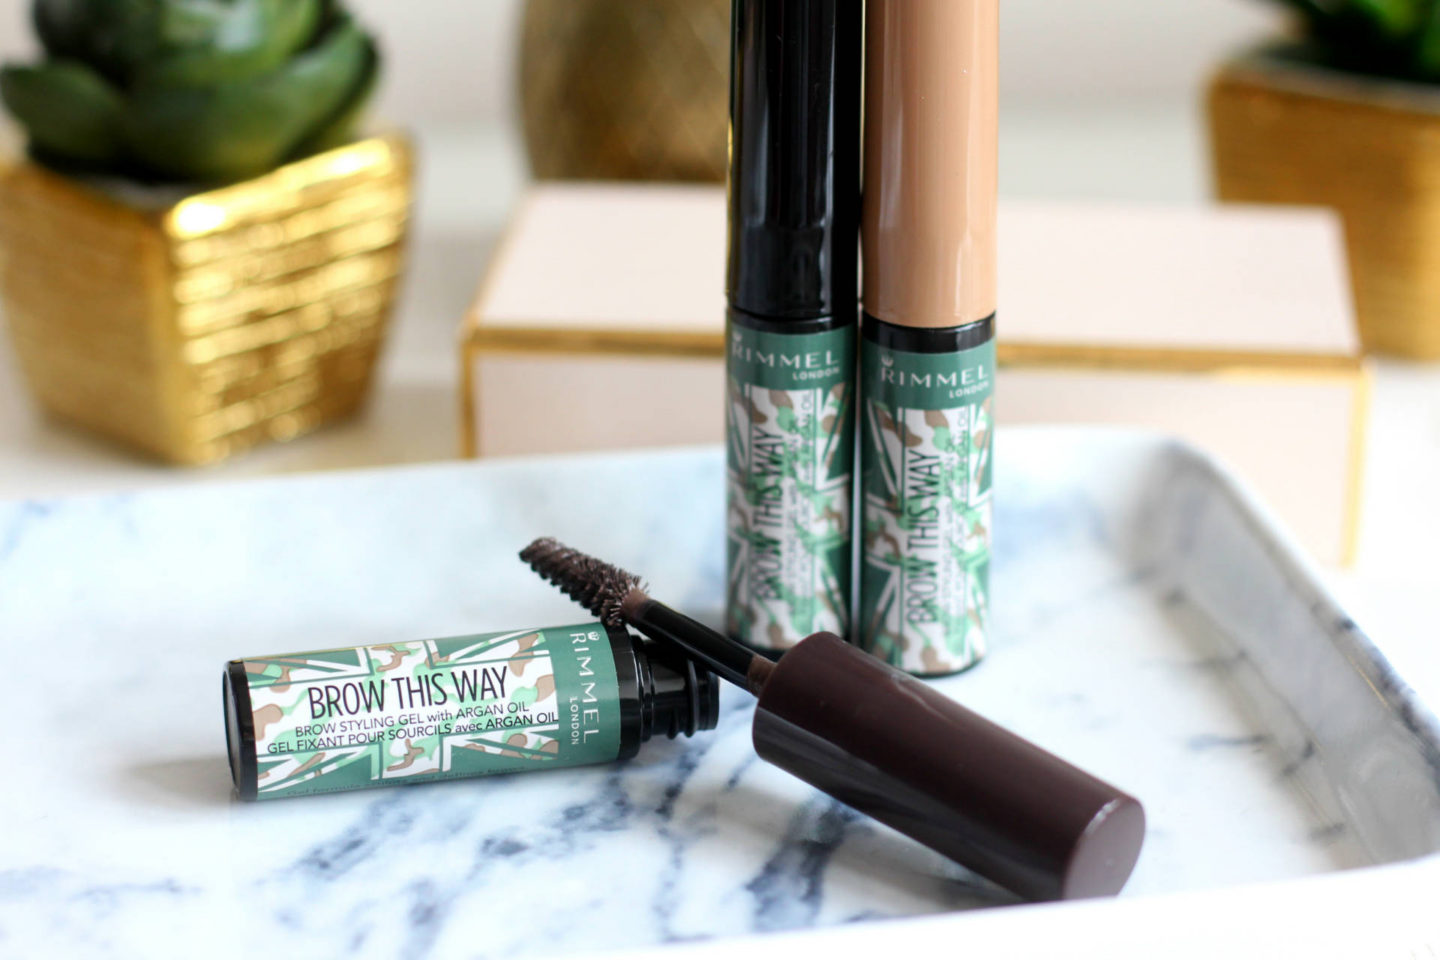 Rimmel Cara Camo Limited Edition Collection